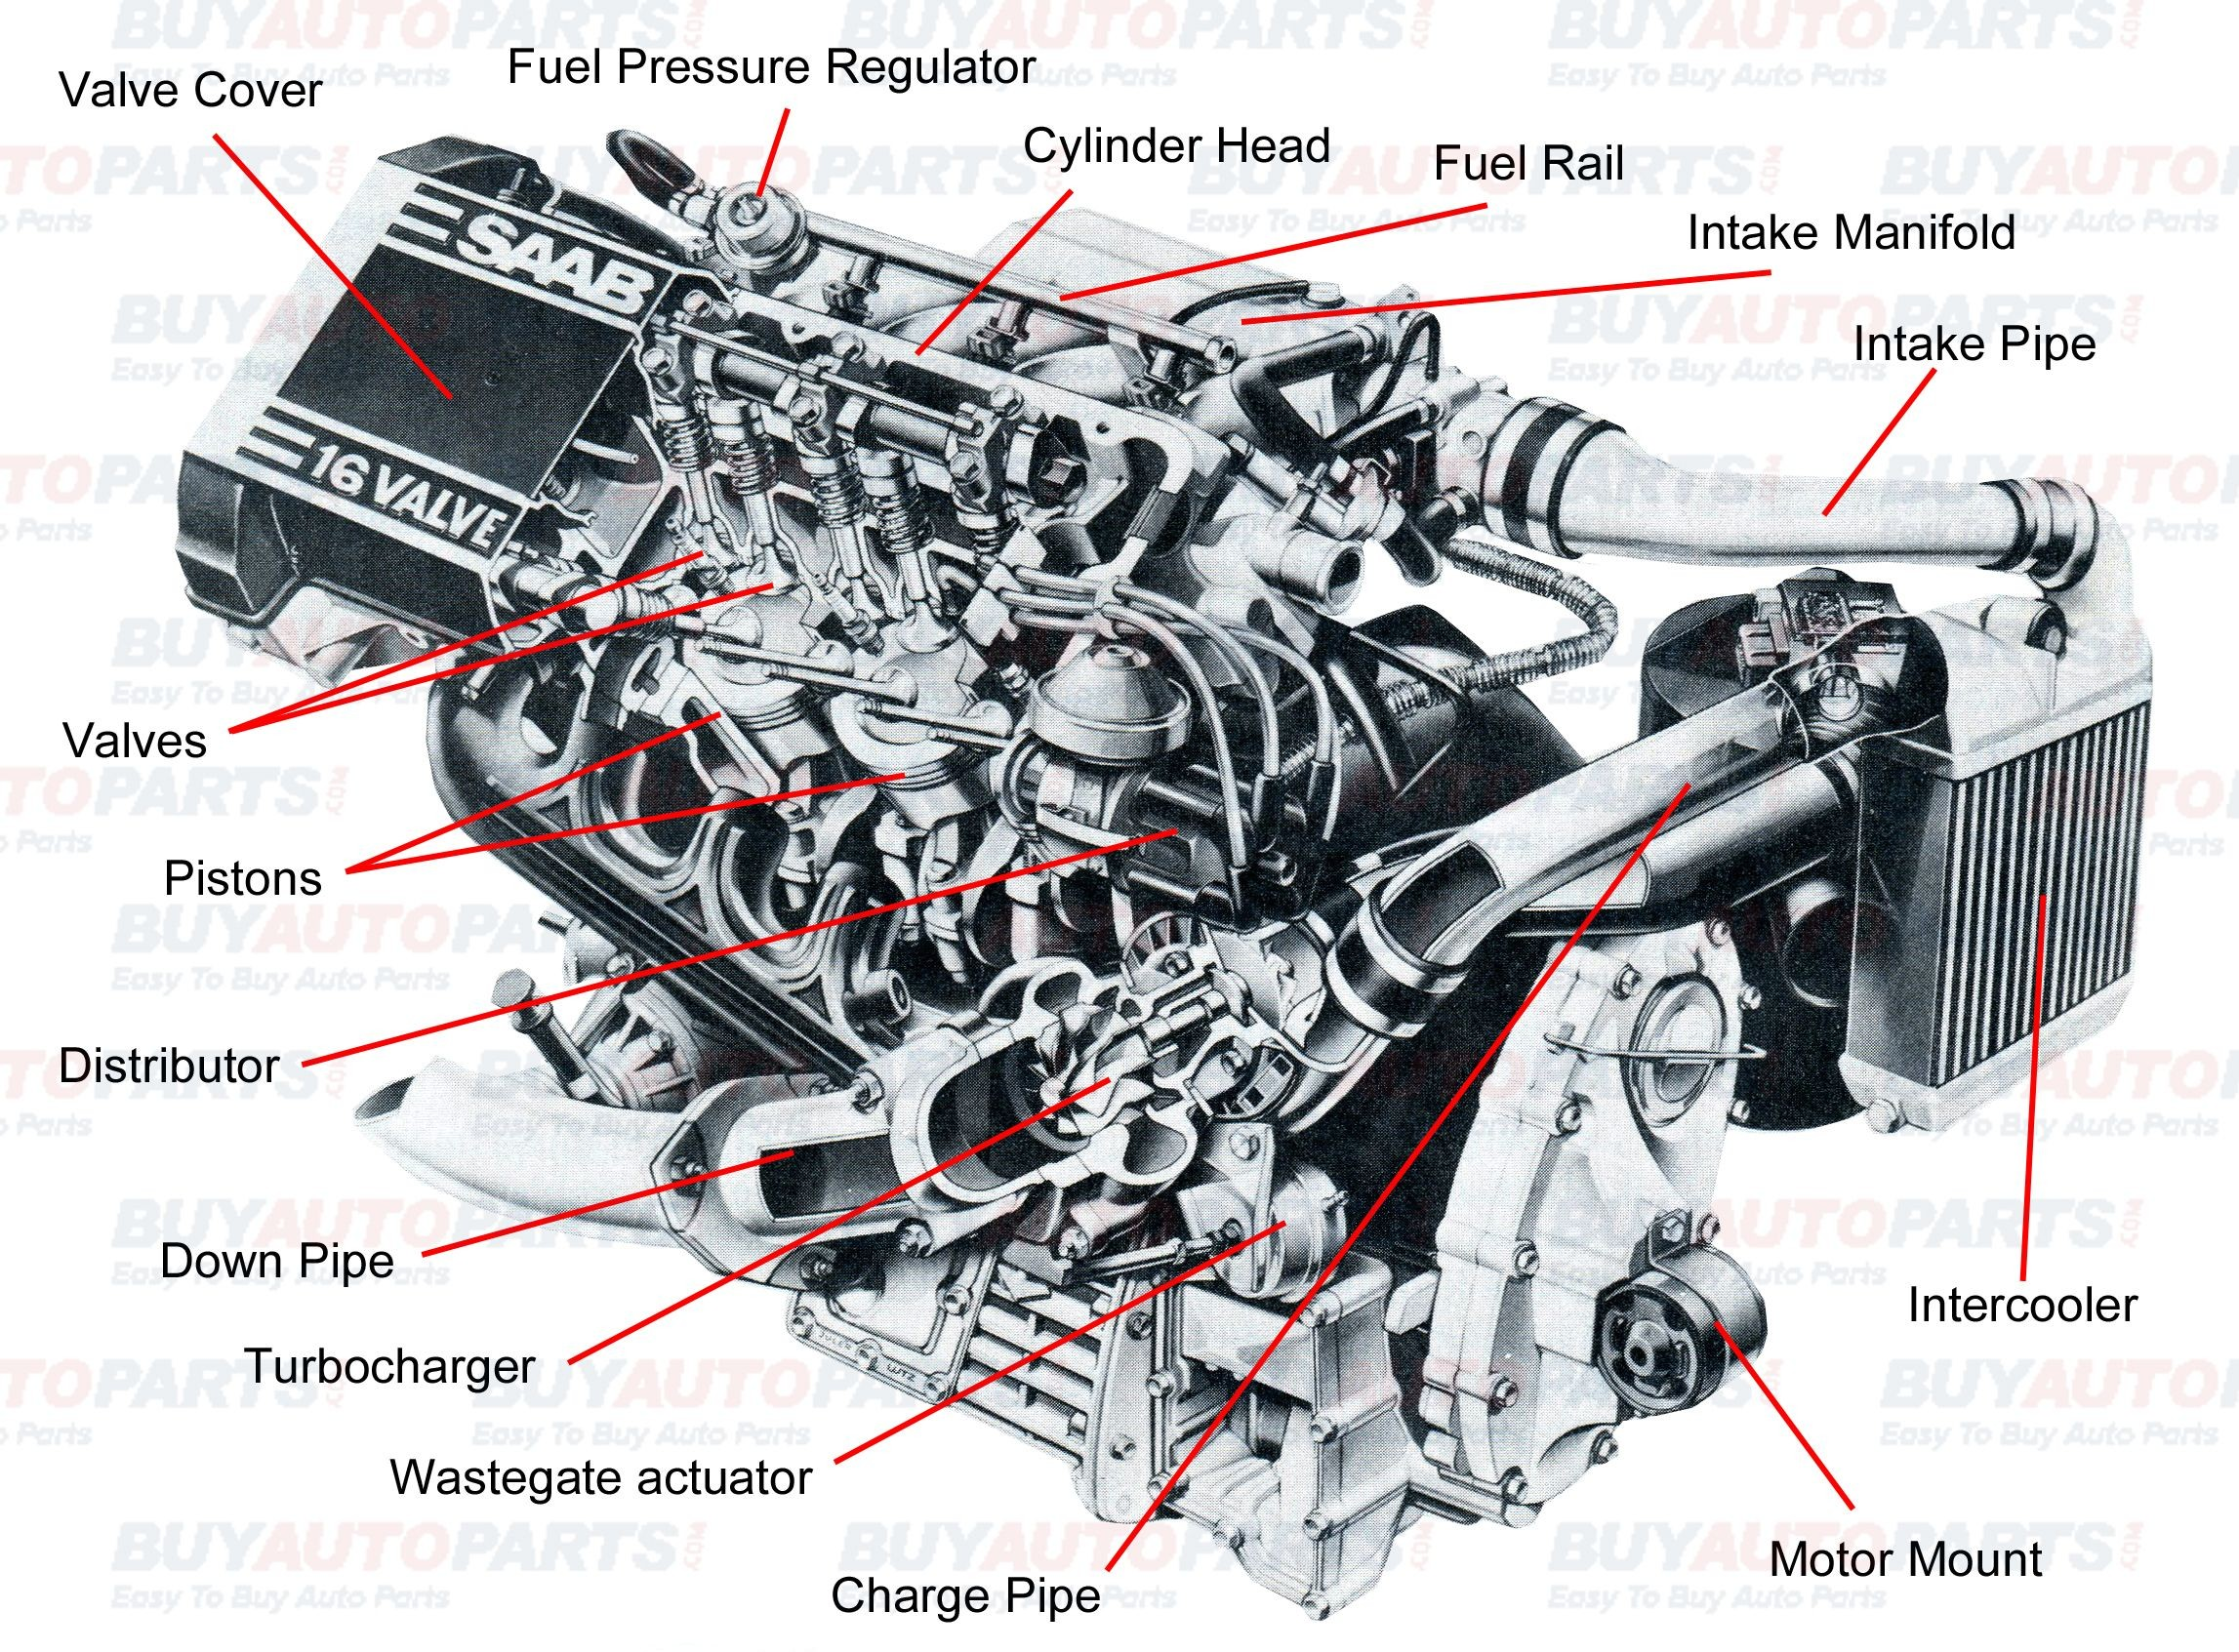 Diagram Of How An Engine Works Pin by Jimmiejanet Testellamwfz On What Does An Engine with Of Diagram Of How An Engine Works